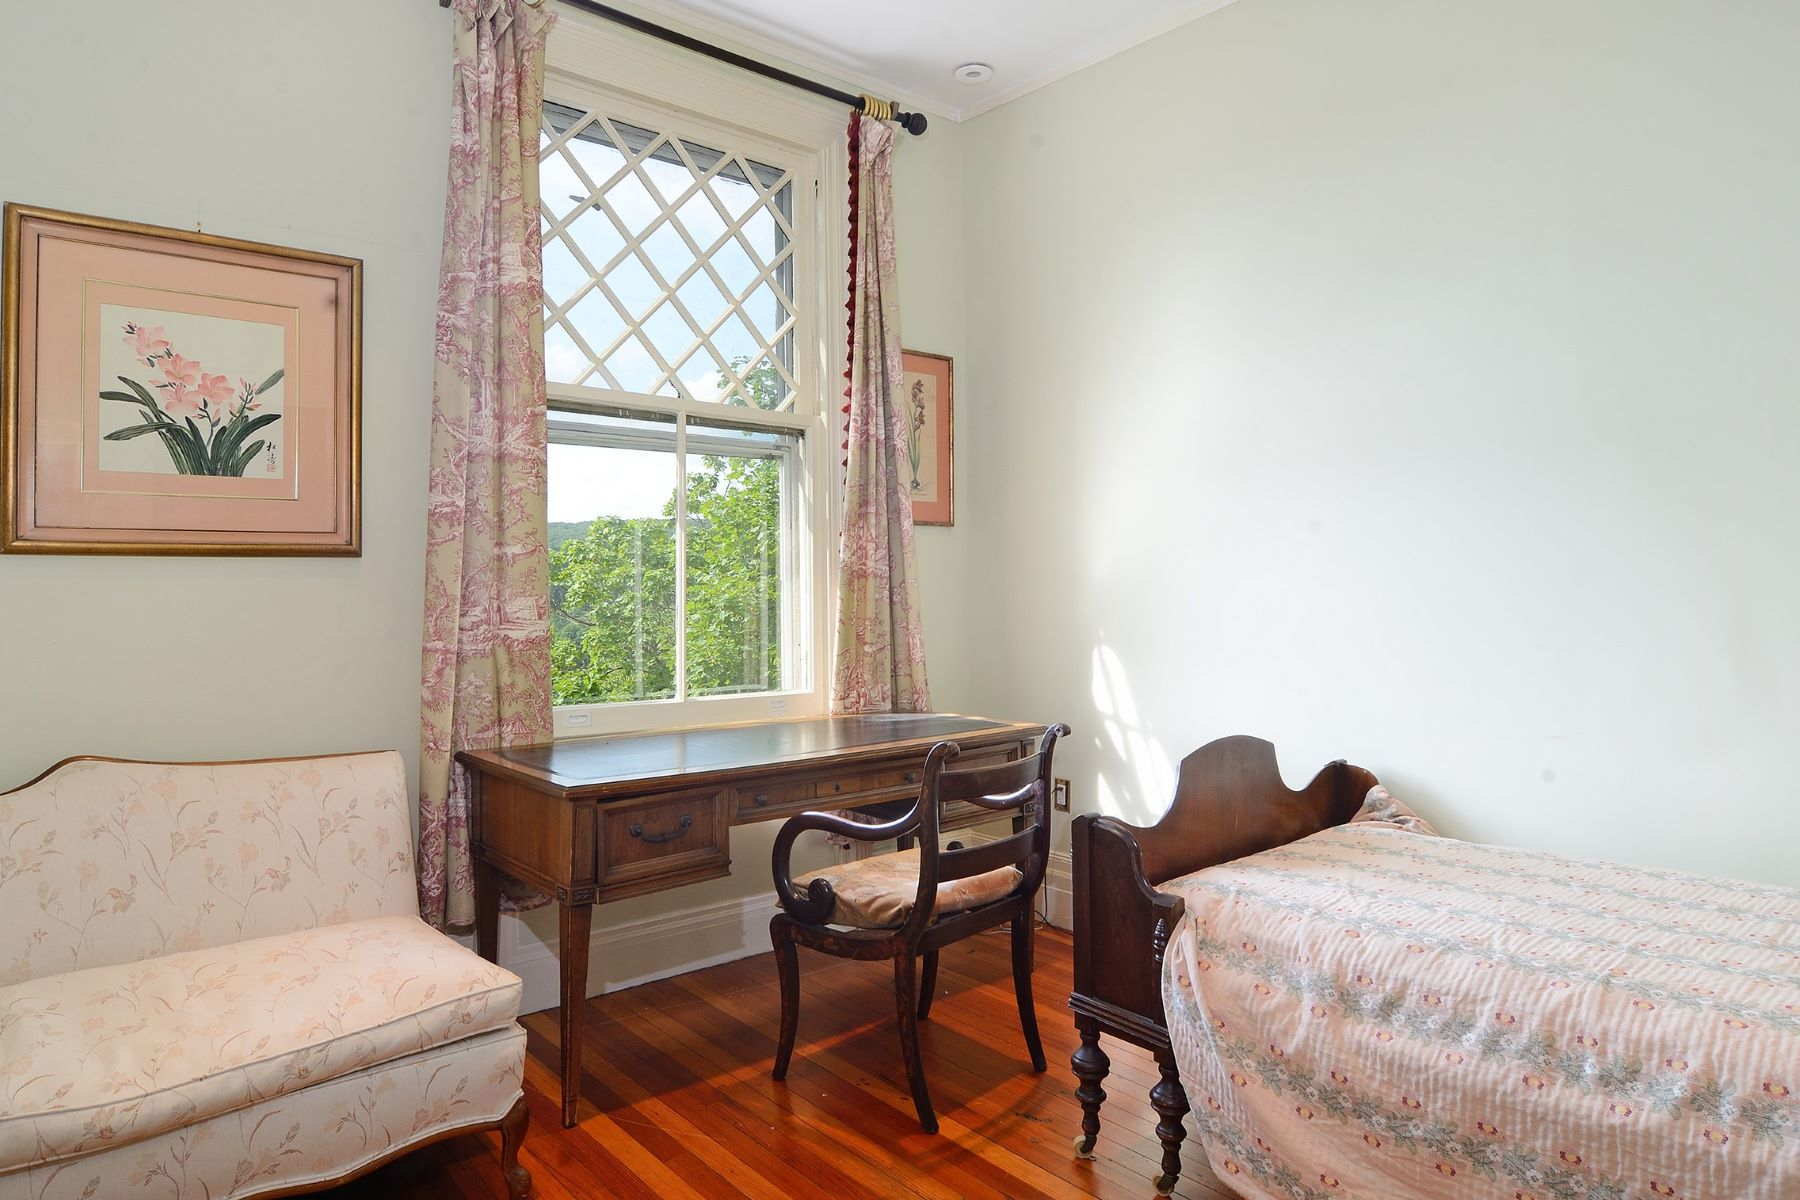 """Additional photo for property listing at """"Ar-y-Bryn"""" 44 Tower Hill Loop Tuxedo Park, New York 10987 United States"""